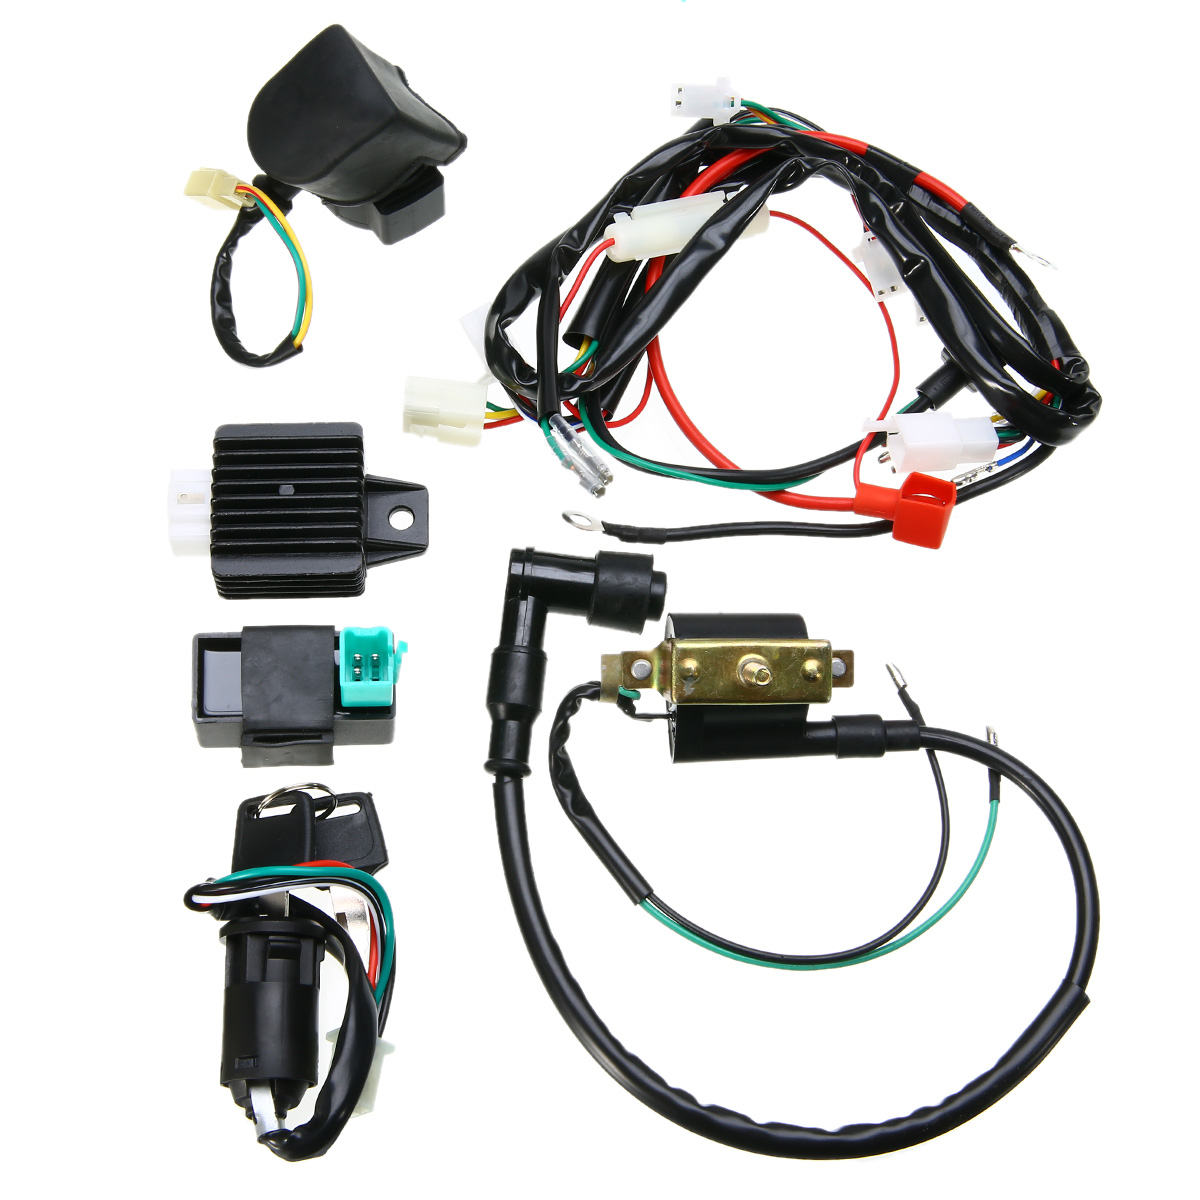 Motorcycle Ignition 50cc 125cc Cdi Quad Wiring Harness Loom Solenoid Ducati 748 Coil Rectifier For 110cc